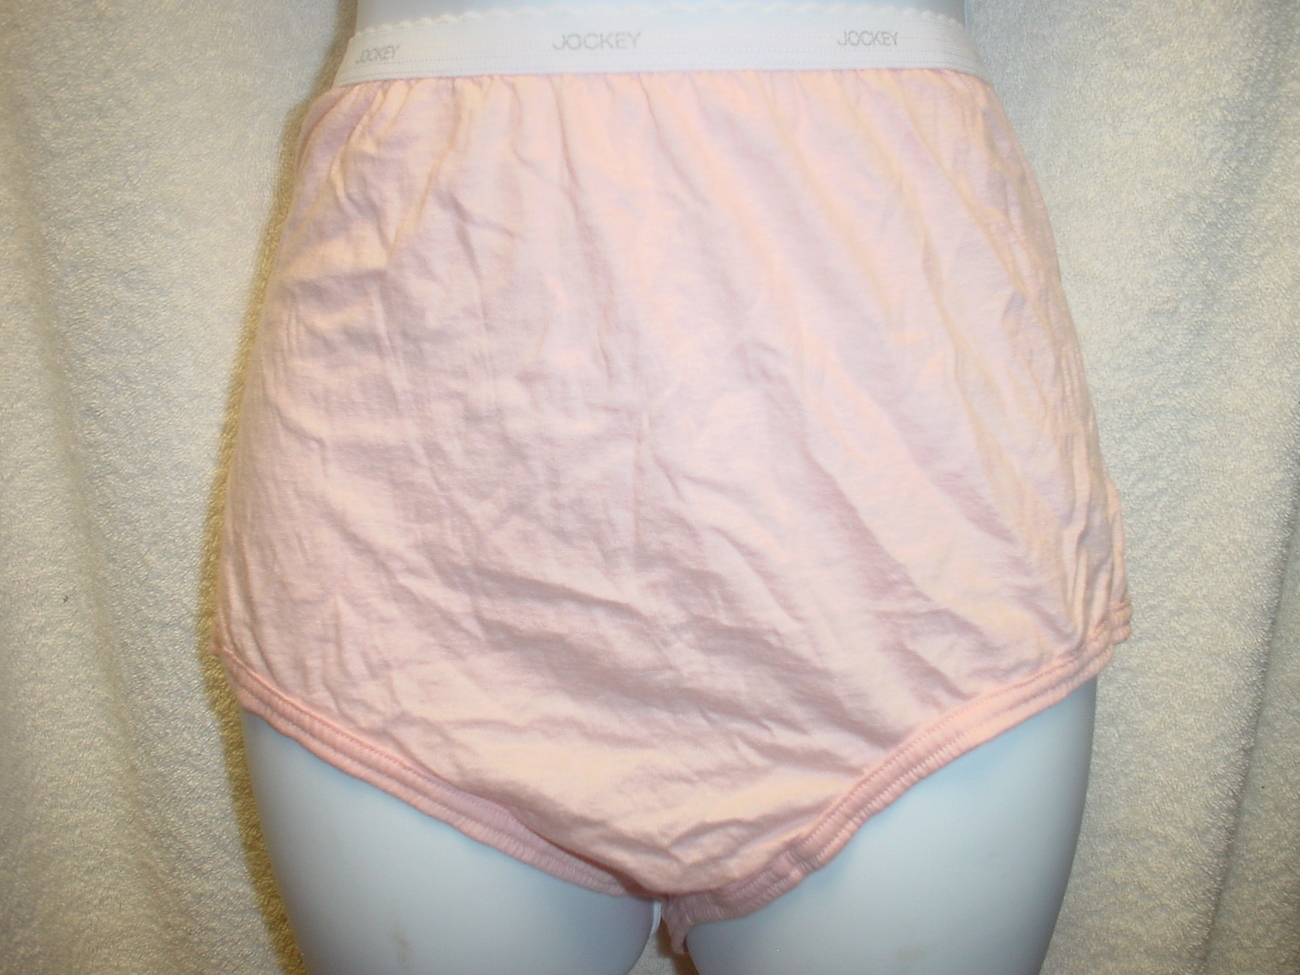 Jockey Cotton Panty 8/XLarge Light Orange SP-Slightly Imperfect  NWOT